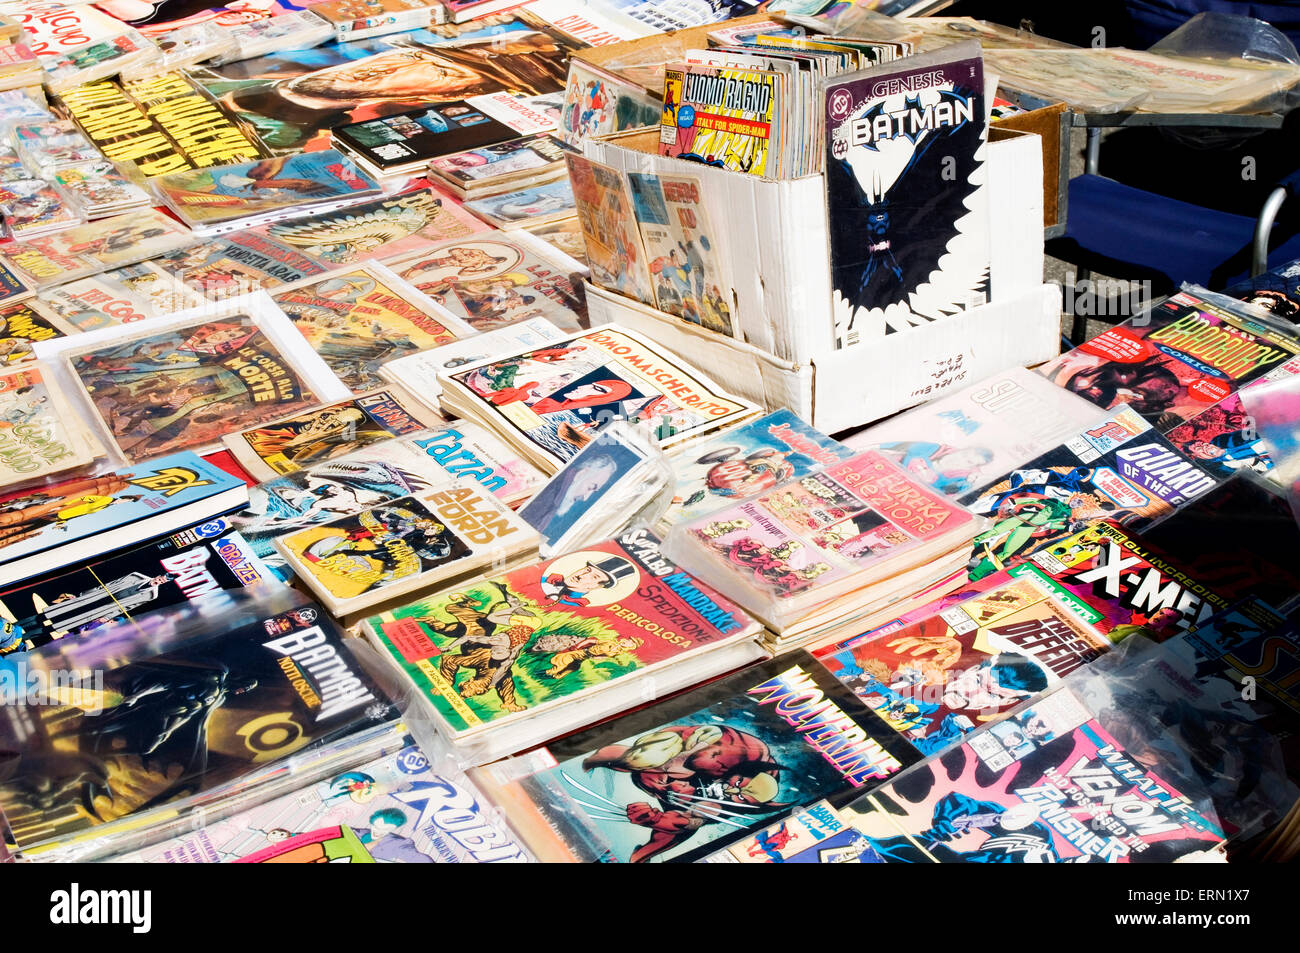 comic comics fair collector collectors collection fairs hobby hobbies collecting collections marvel dc american - Stock Image